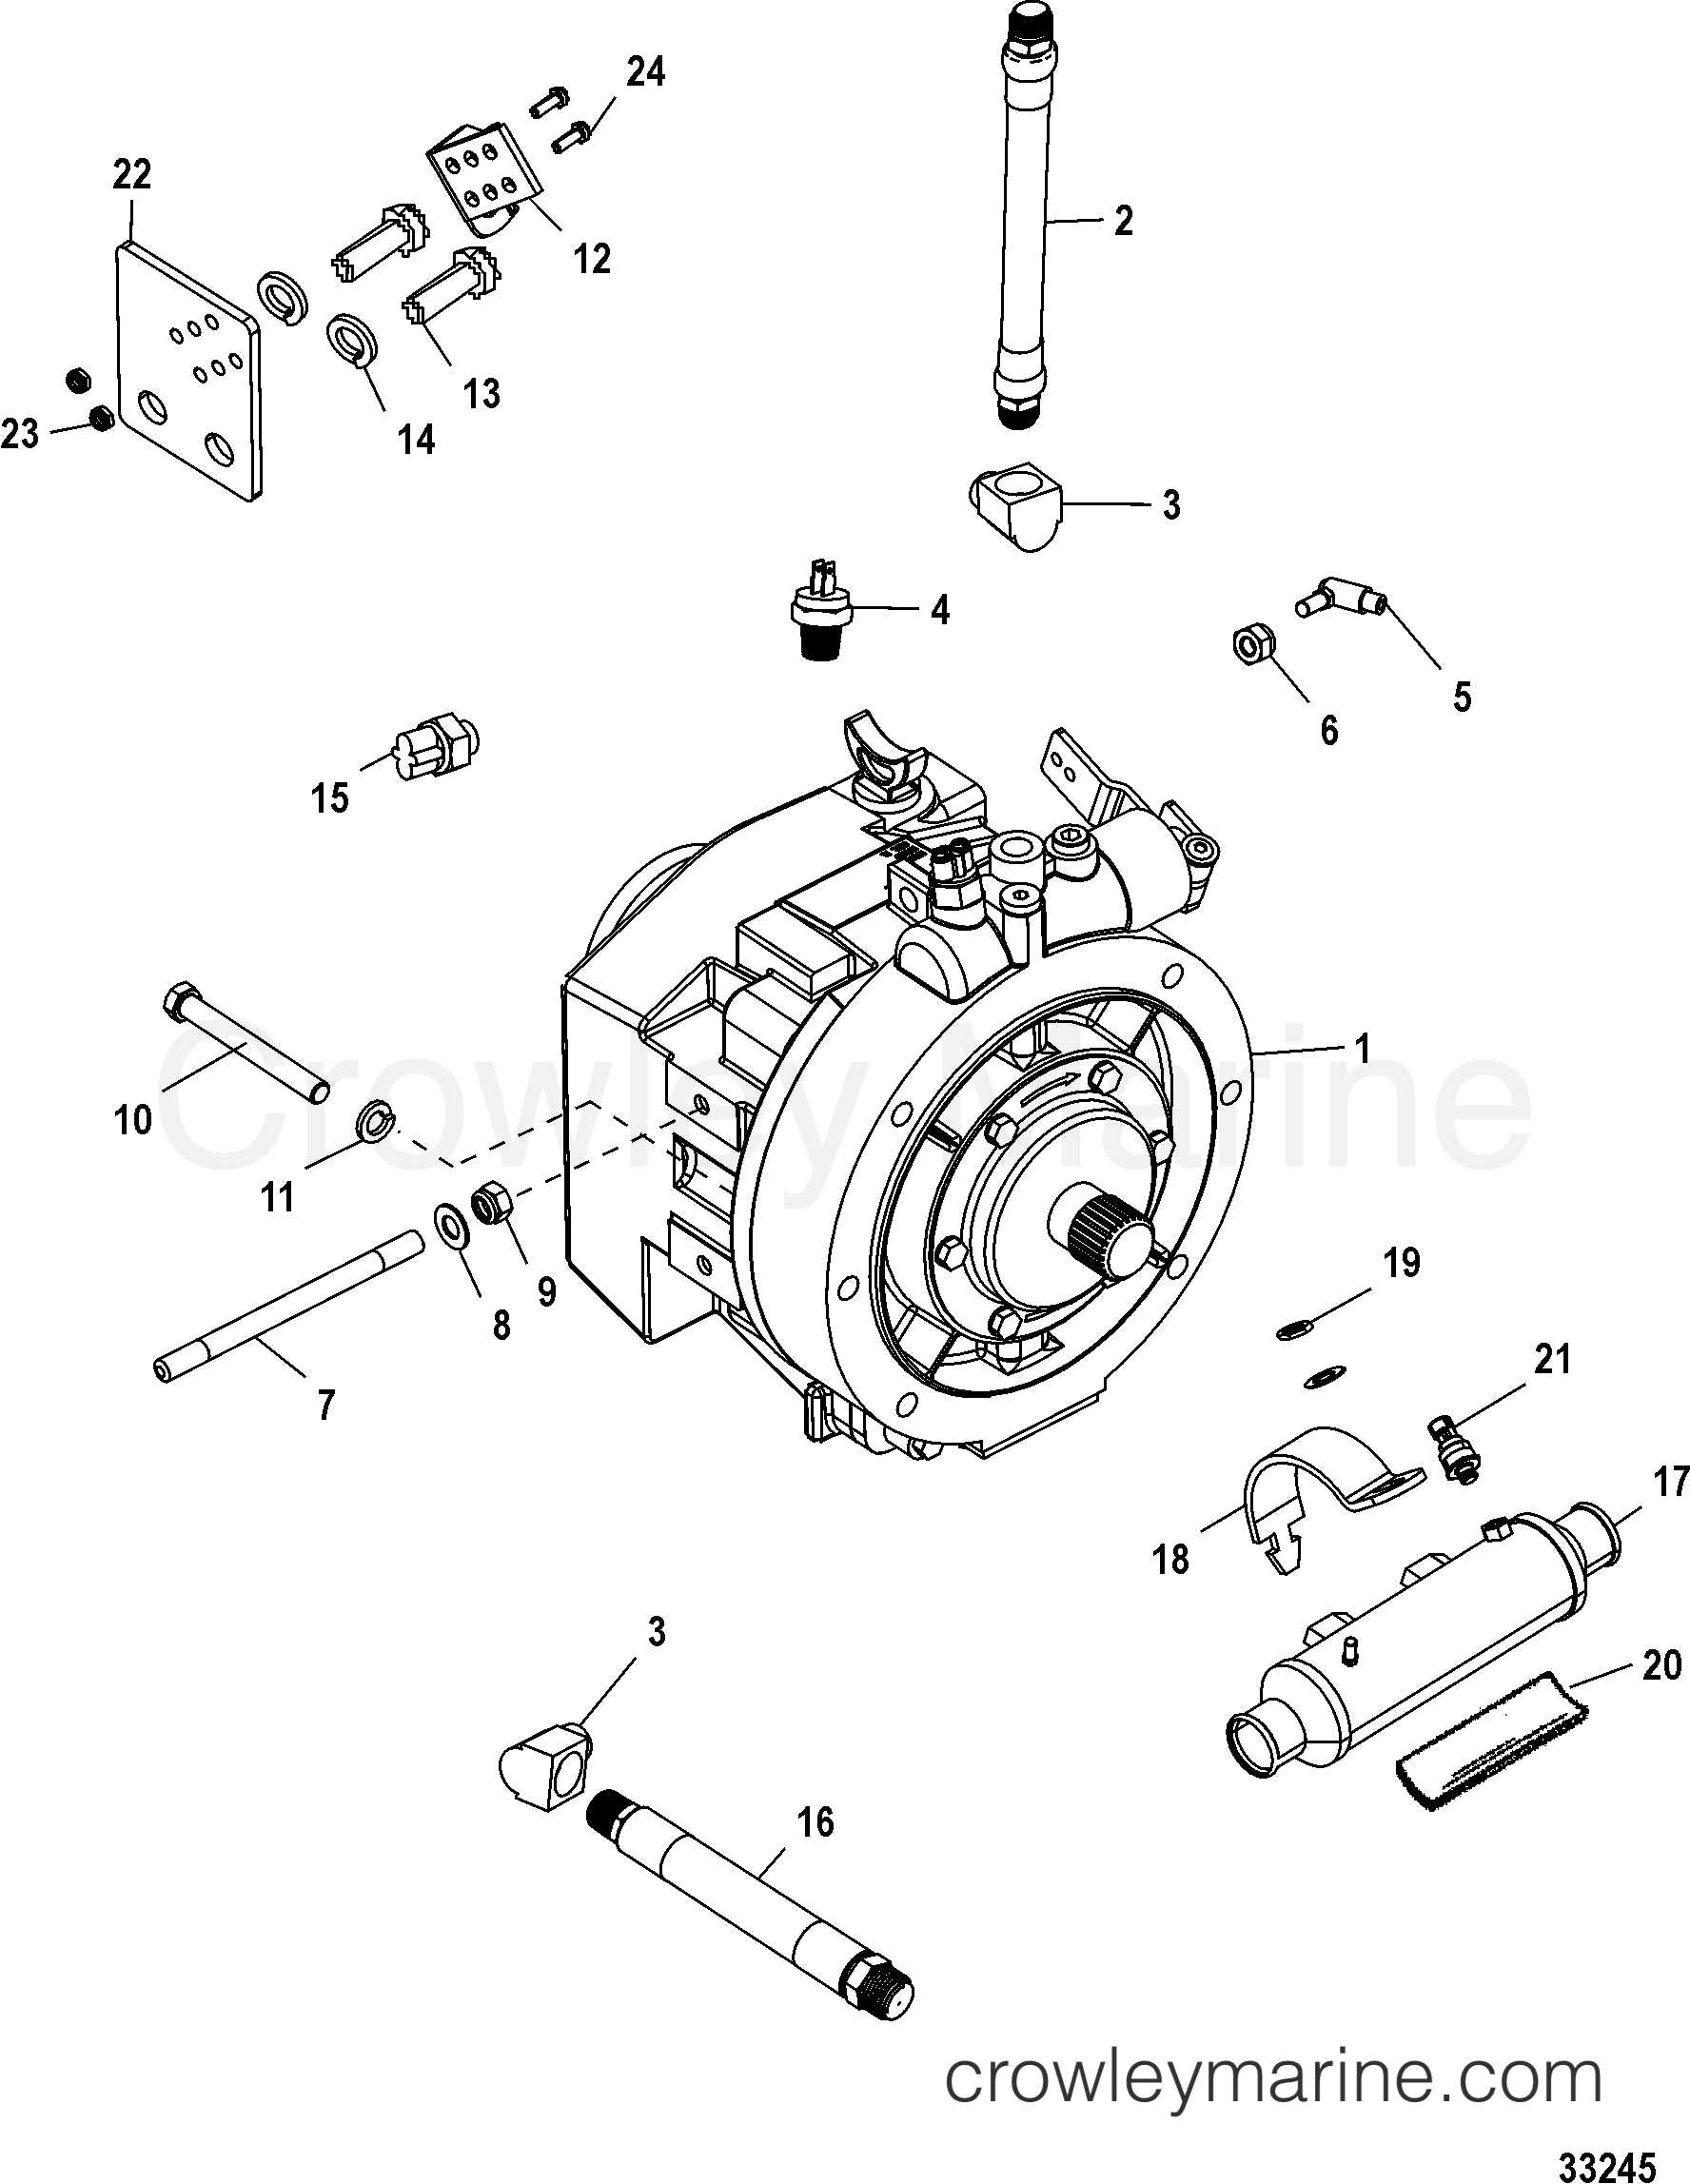 TRANSMISSION AND RELATED PARTS(ZF - 45C) - 1998 Mercury Inboard